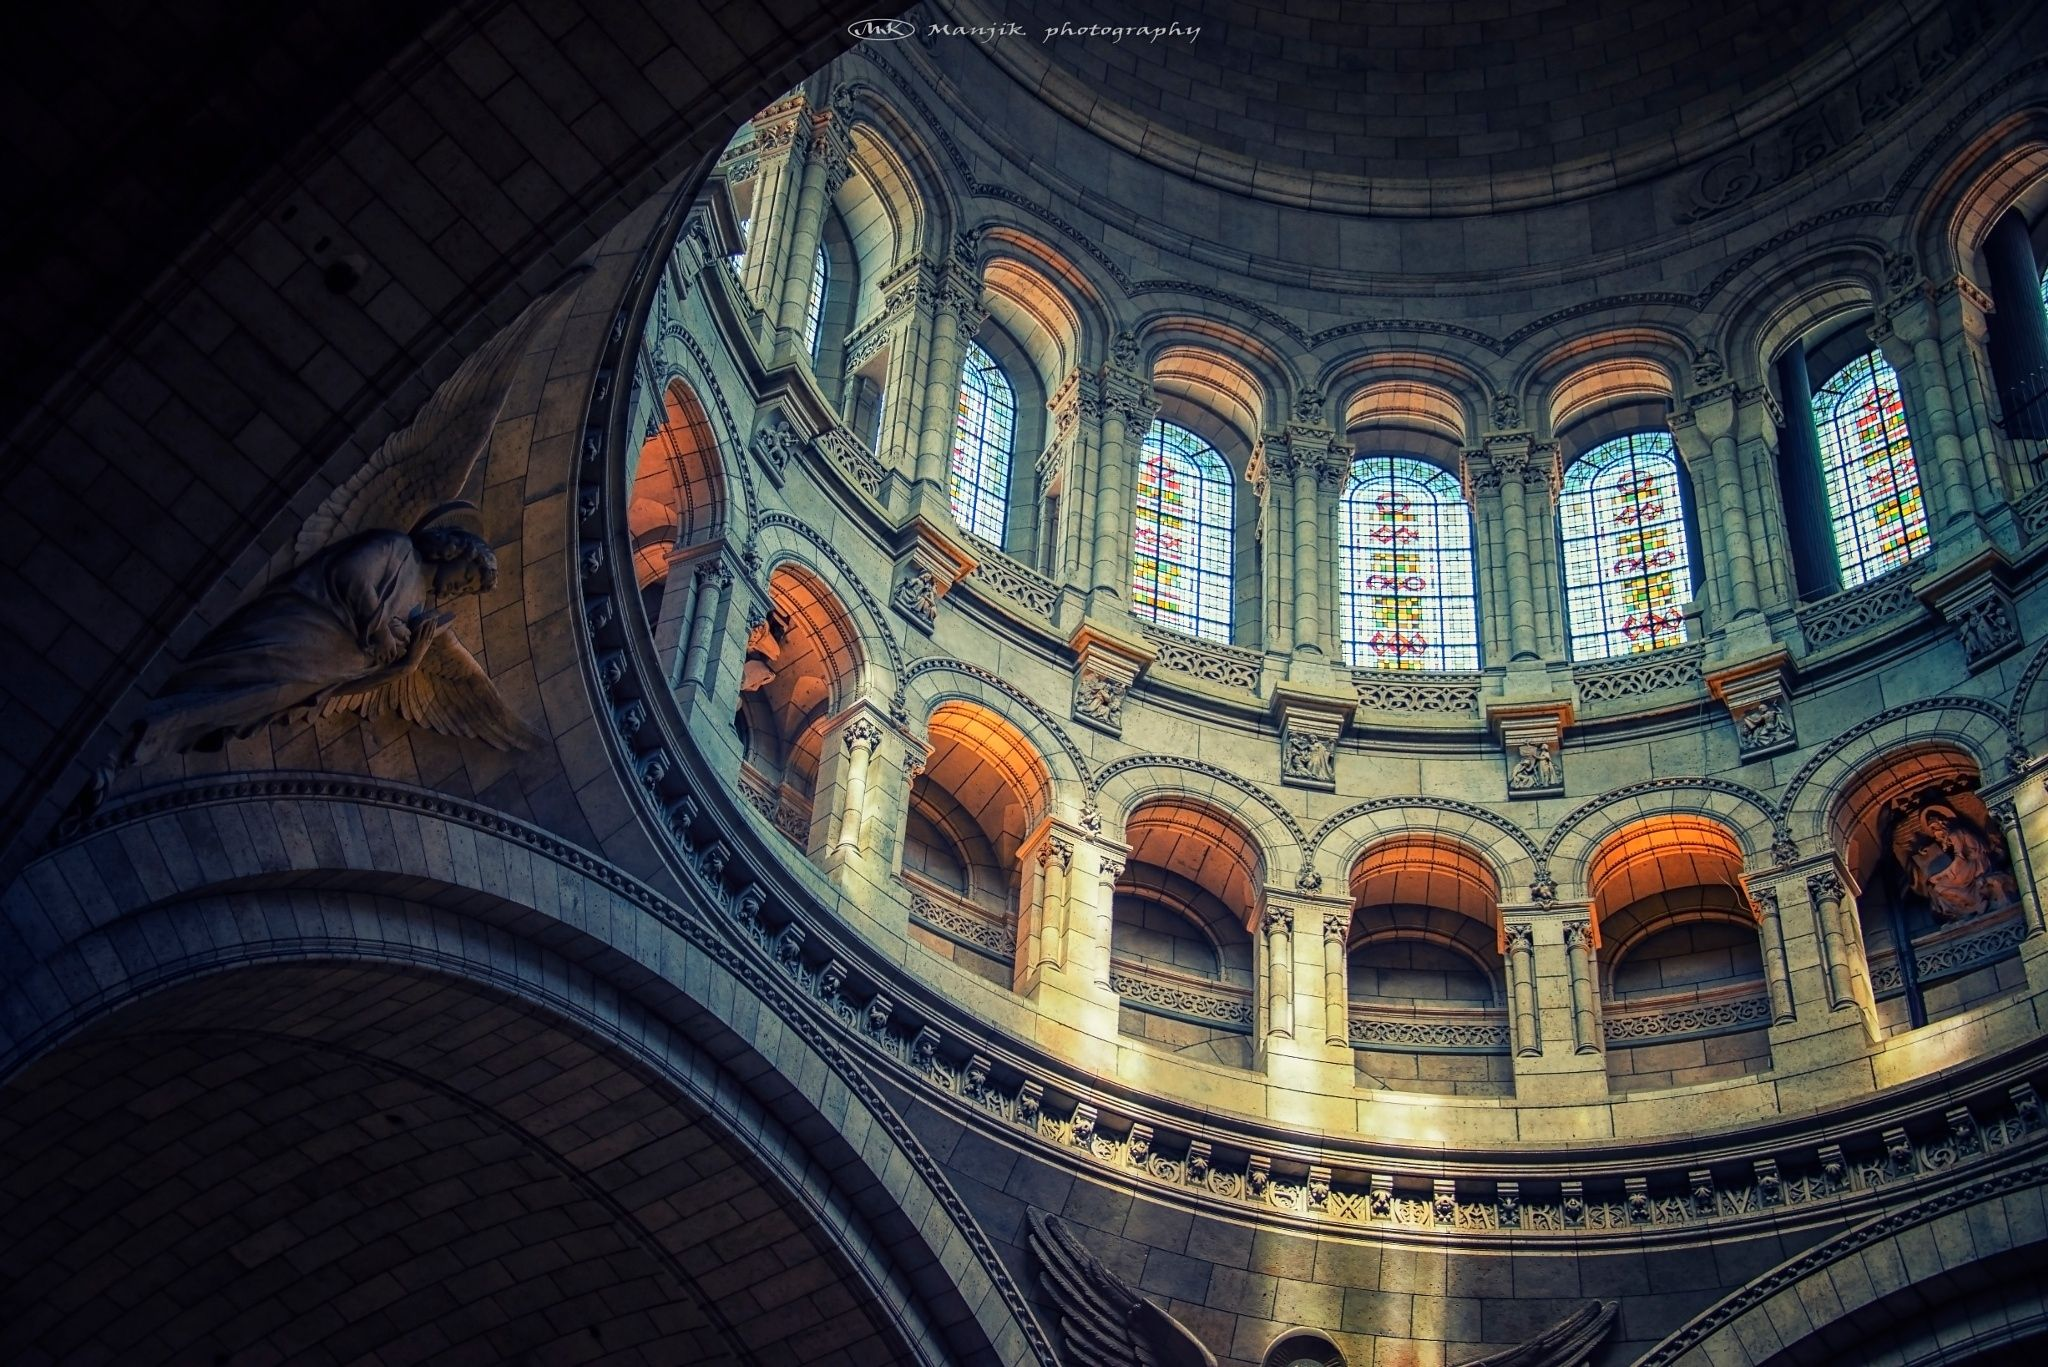 """Light from divine - Sacré-coeur in Paris  Feel free to follow me on : <a href=""""https://www.facebook.com/manjik.photography"""">Facebook</a>  <a href=""""https://www.flickr.com/photos/127381755@N02/"""">Flickr</a> <a href=""""https://www.instagram.com/manjikphotography"""">Instagram</a> <a href=""""https://twitter.com/ManjikPictures"""">Twitter</a>"""